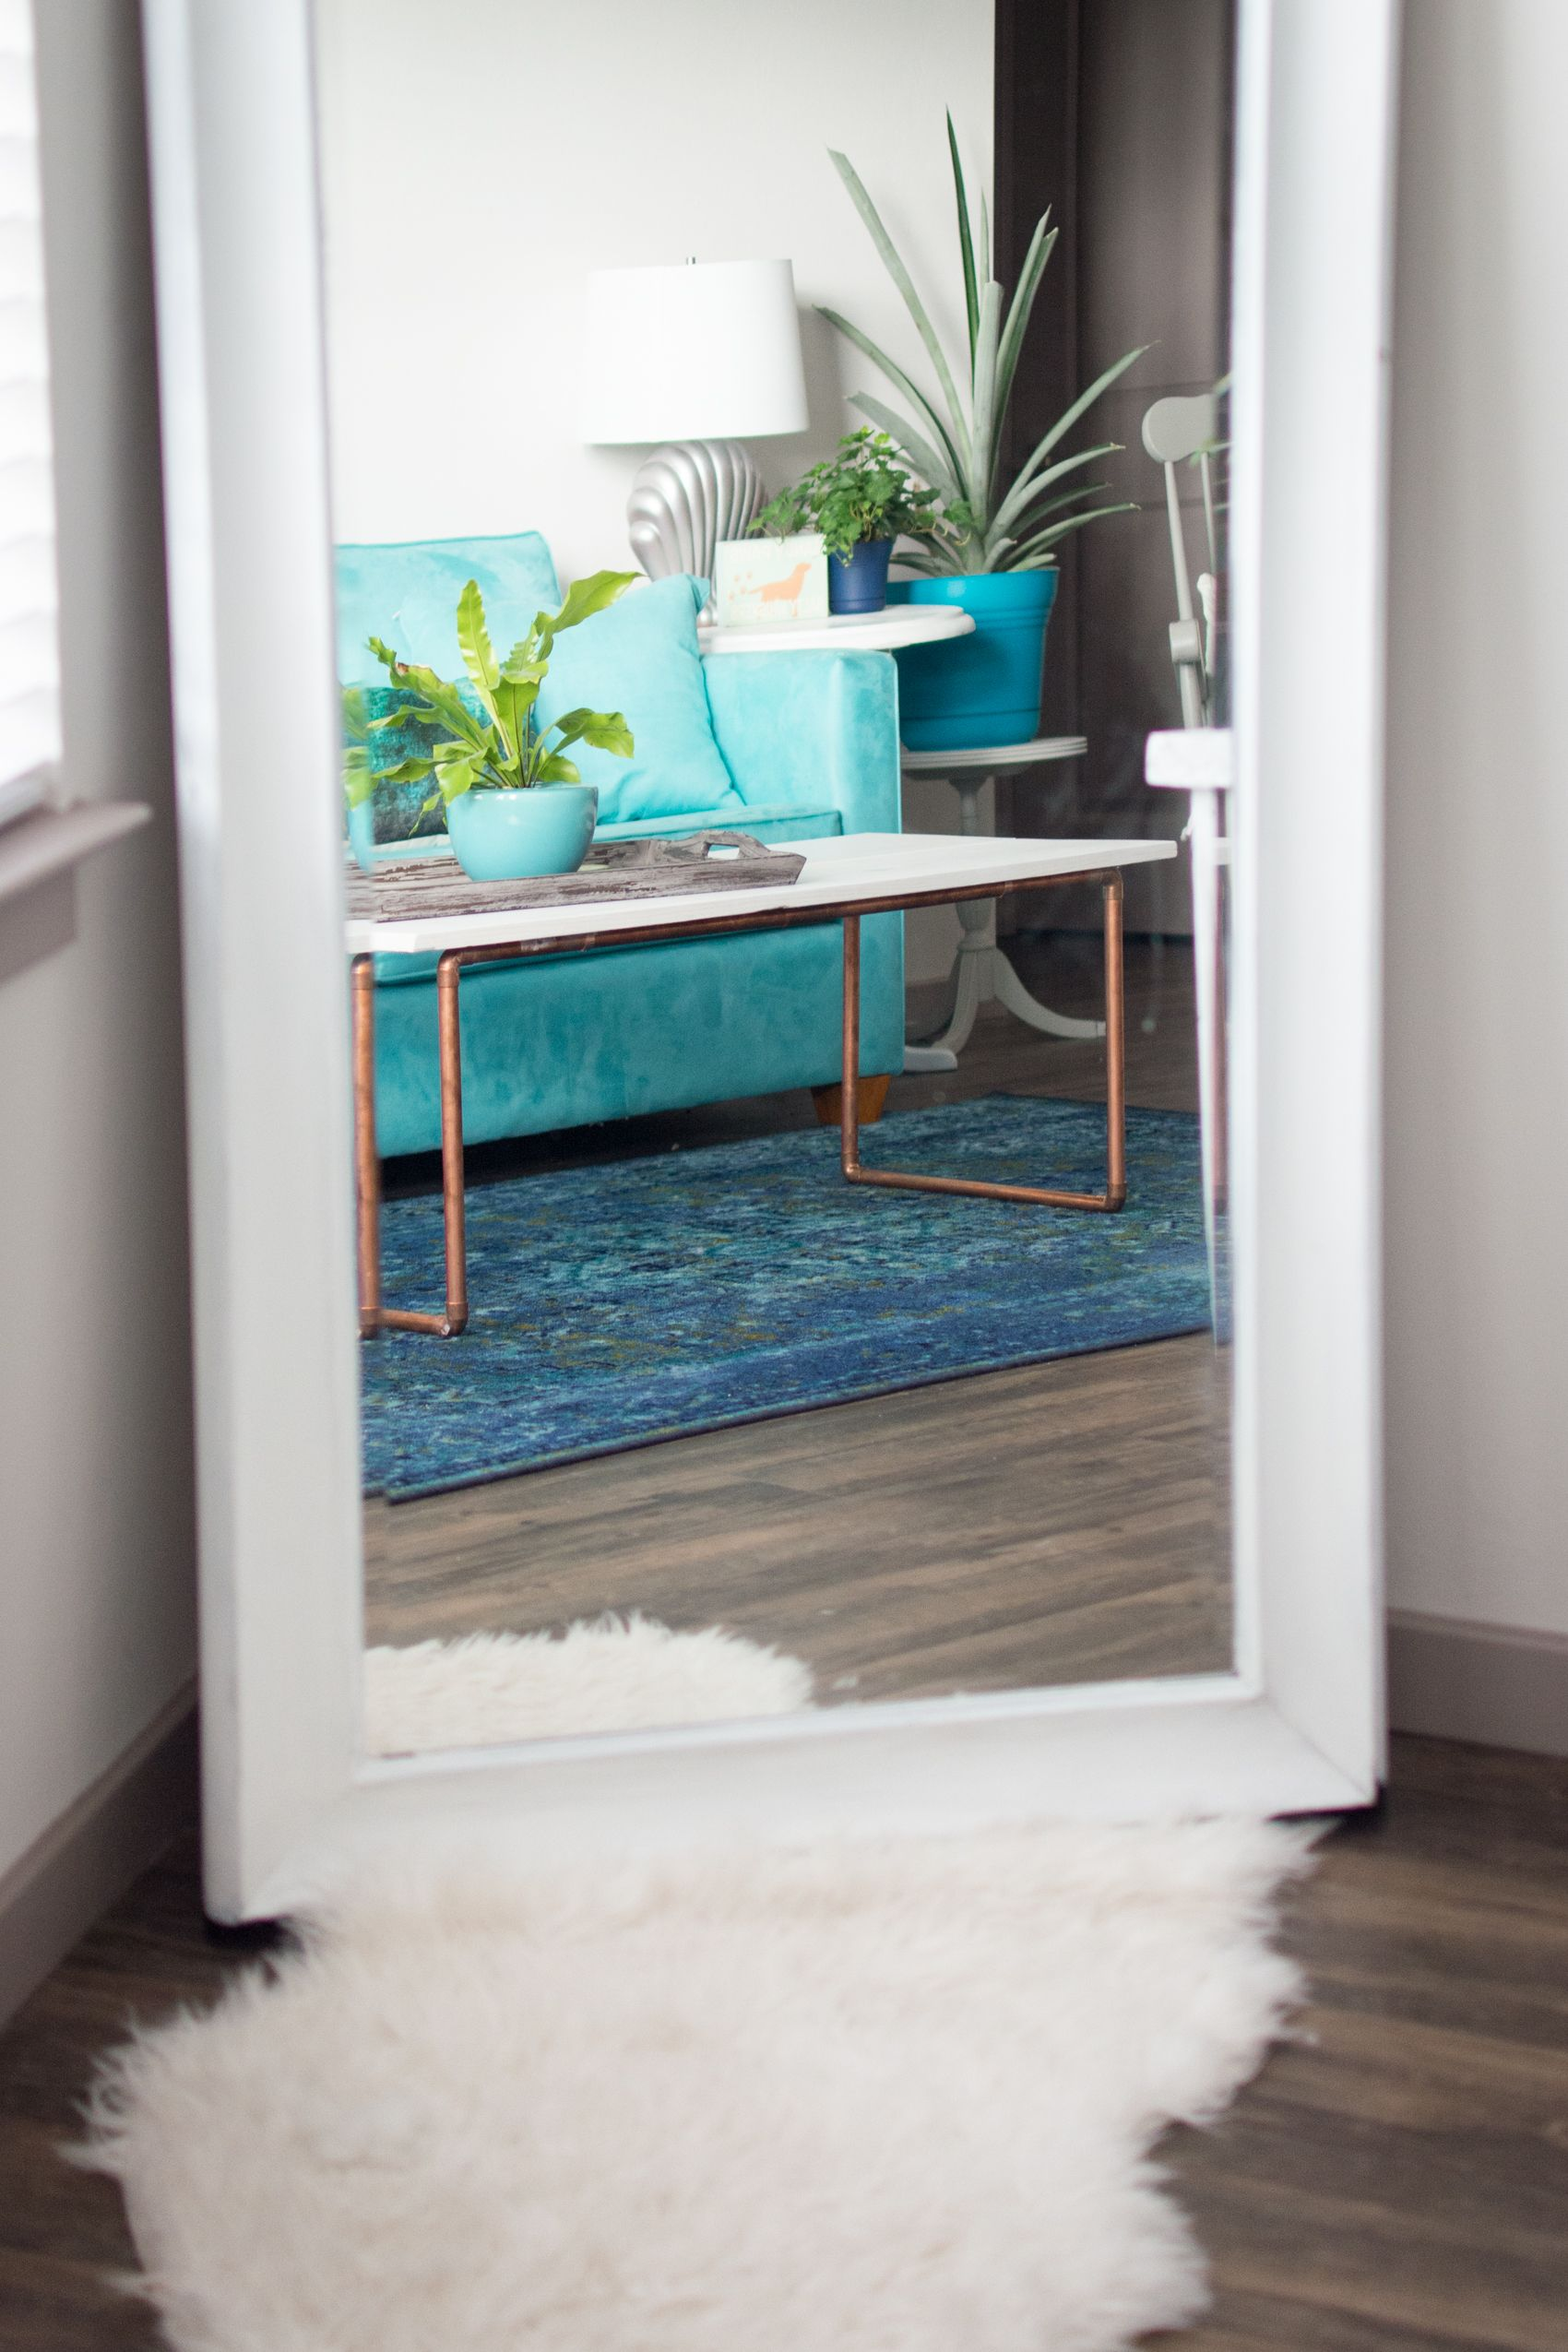 Inexpensive Room Separators Exit Coper: DIY Wood & Copper Coffee Table